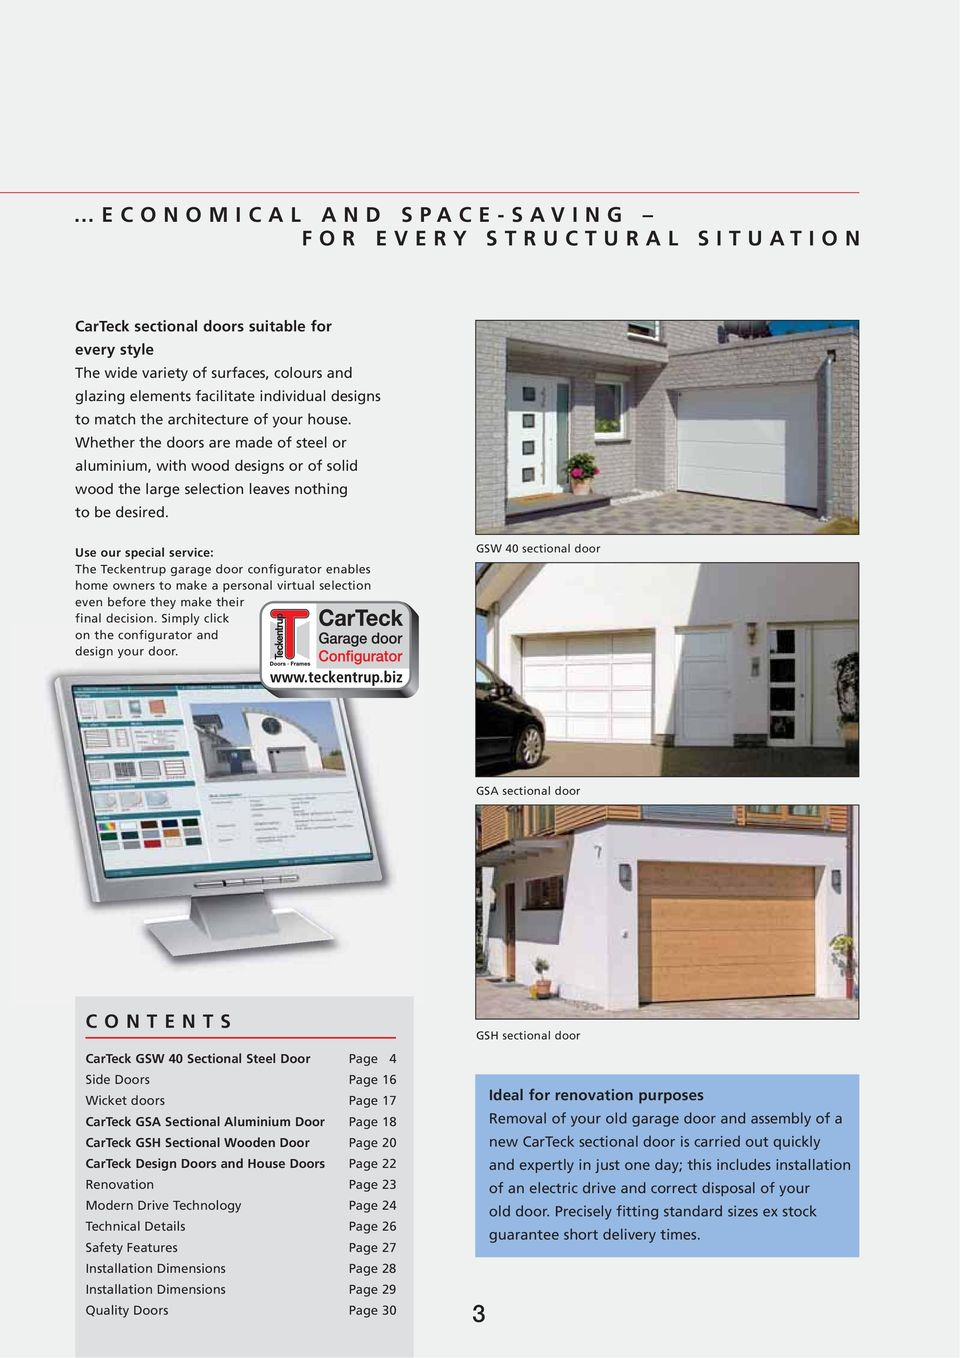 Use our special service: The Teckentrup garage door configurator enables home owners to make a personal virtual selection even before they make their final decision.